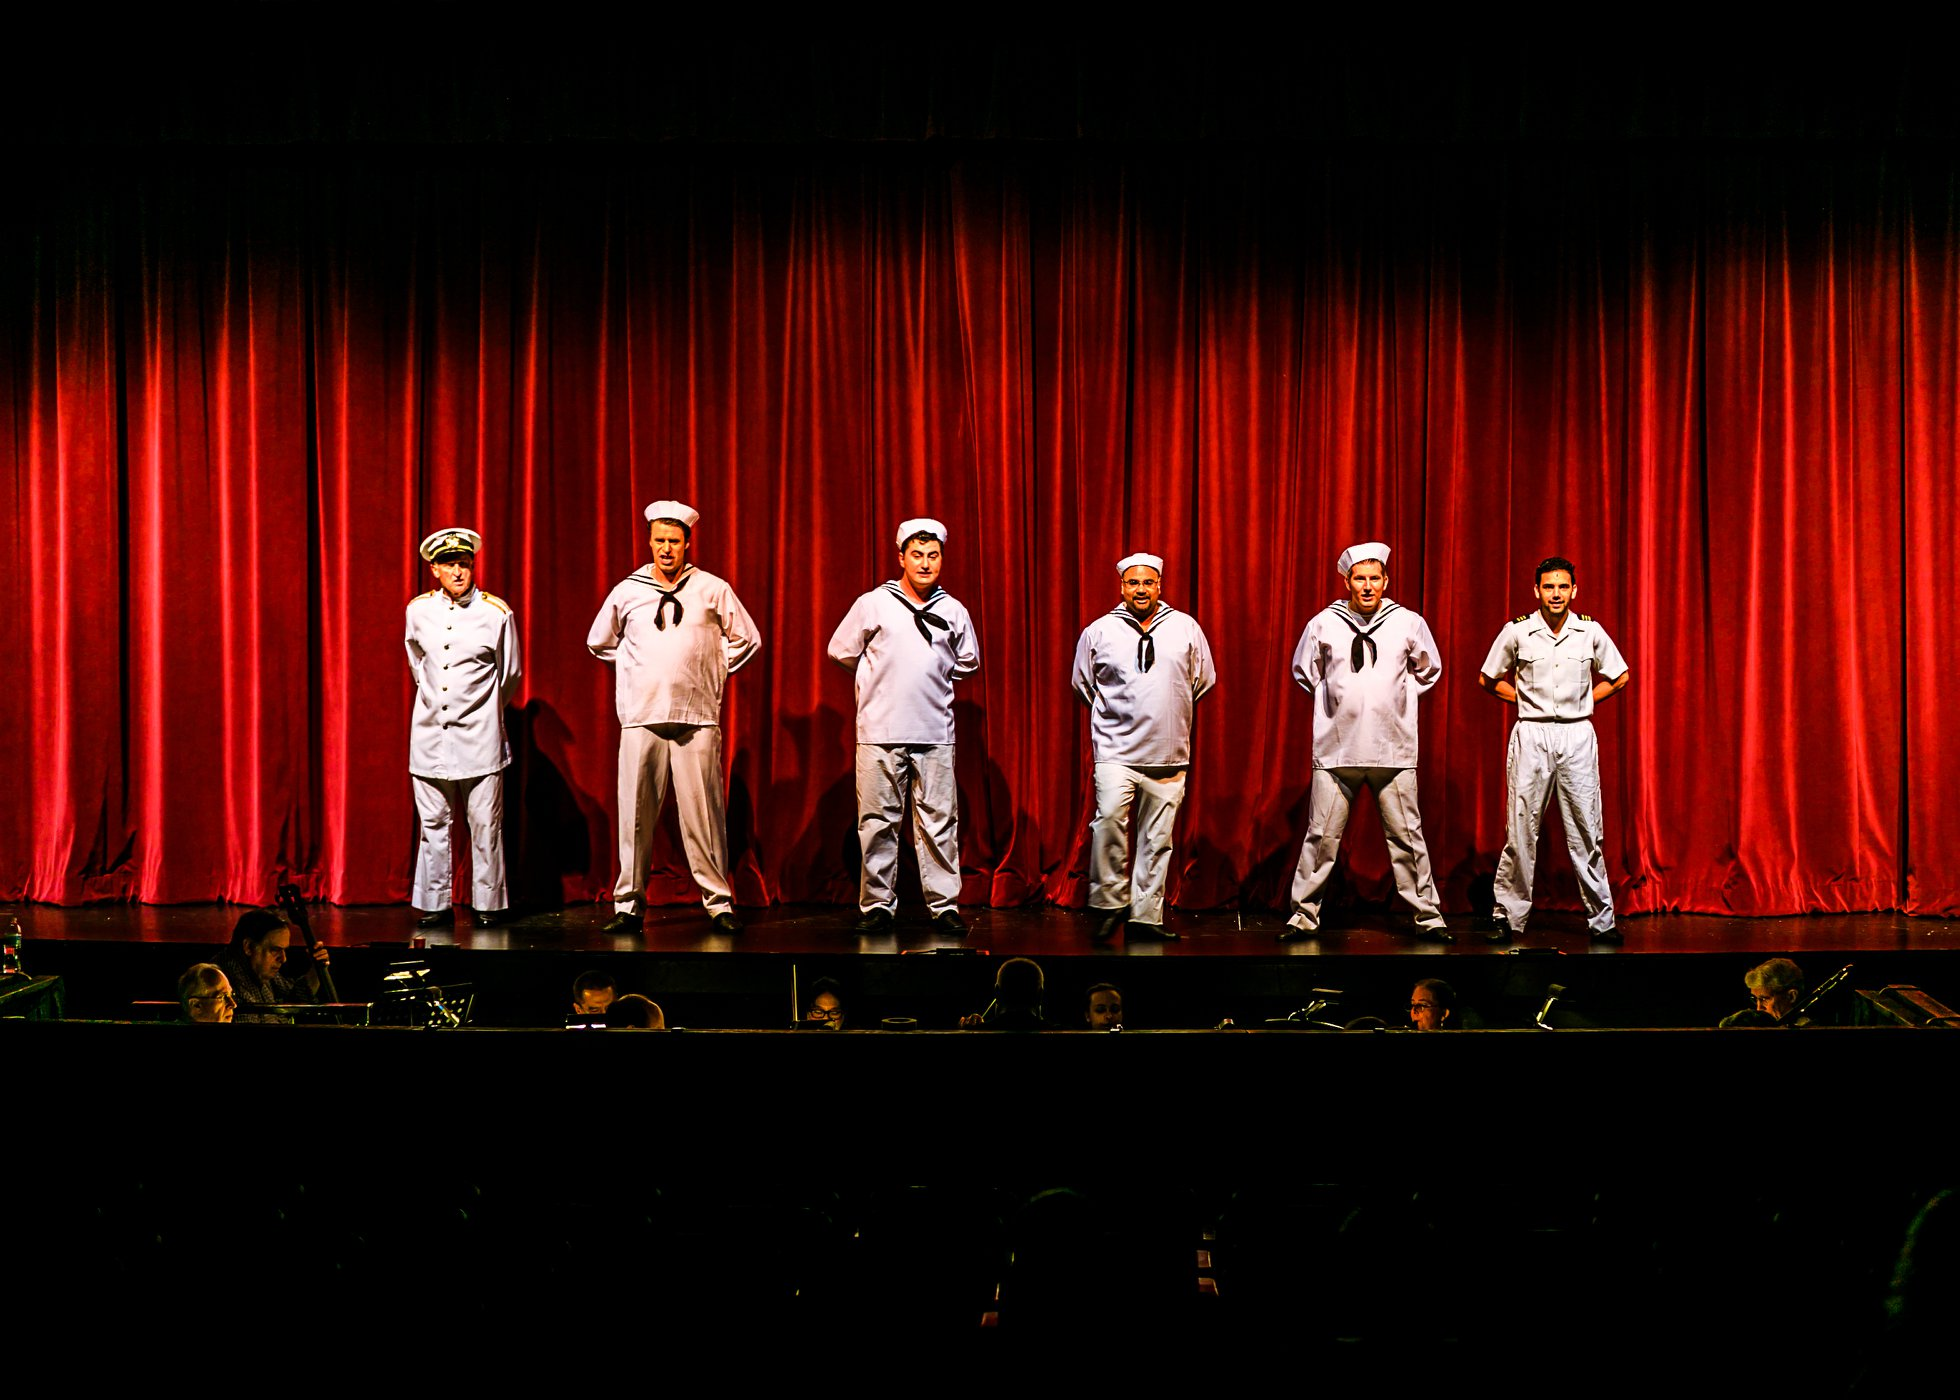 Cole Porter's Anything Goes, presented by Rockville Musical Theatre, plays through July 22 at F. Scott Fitzgerald Theatre at Rockville Civic Center Park. Photo by Dan Amodeo Photography.